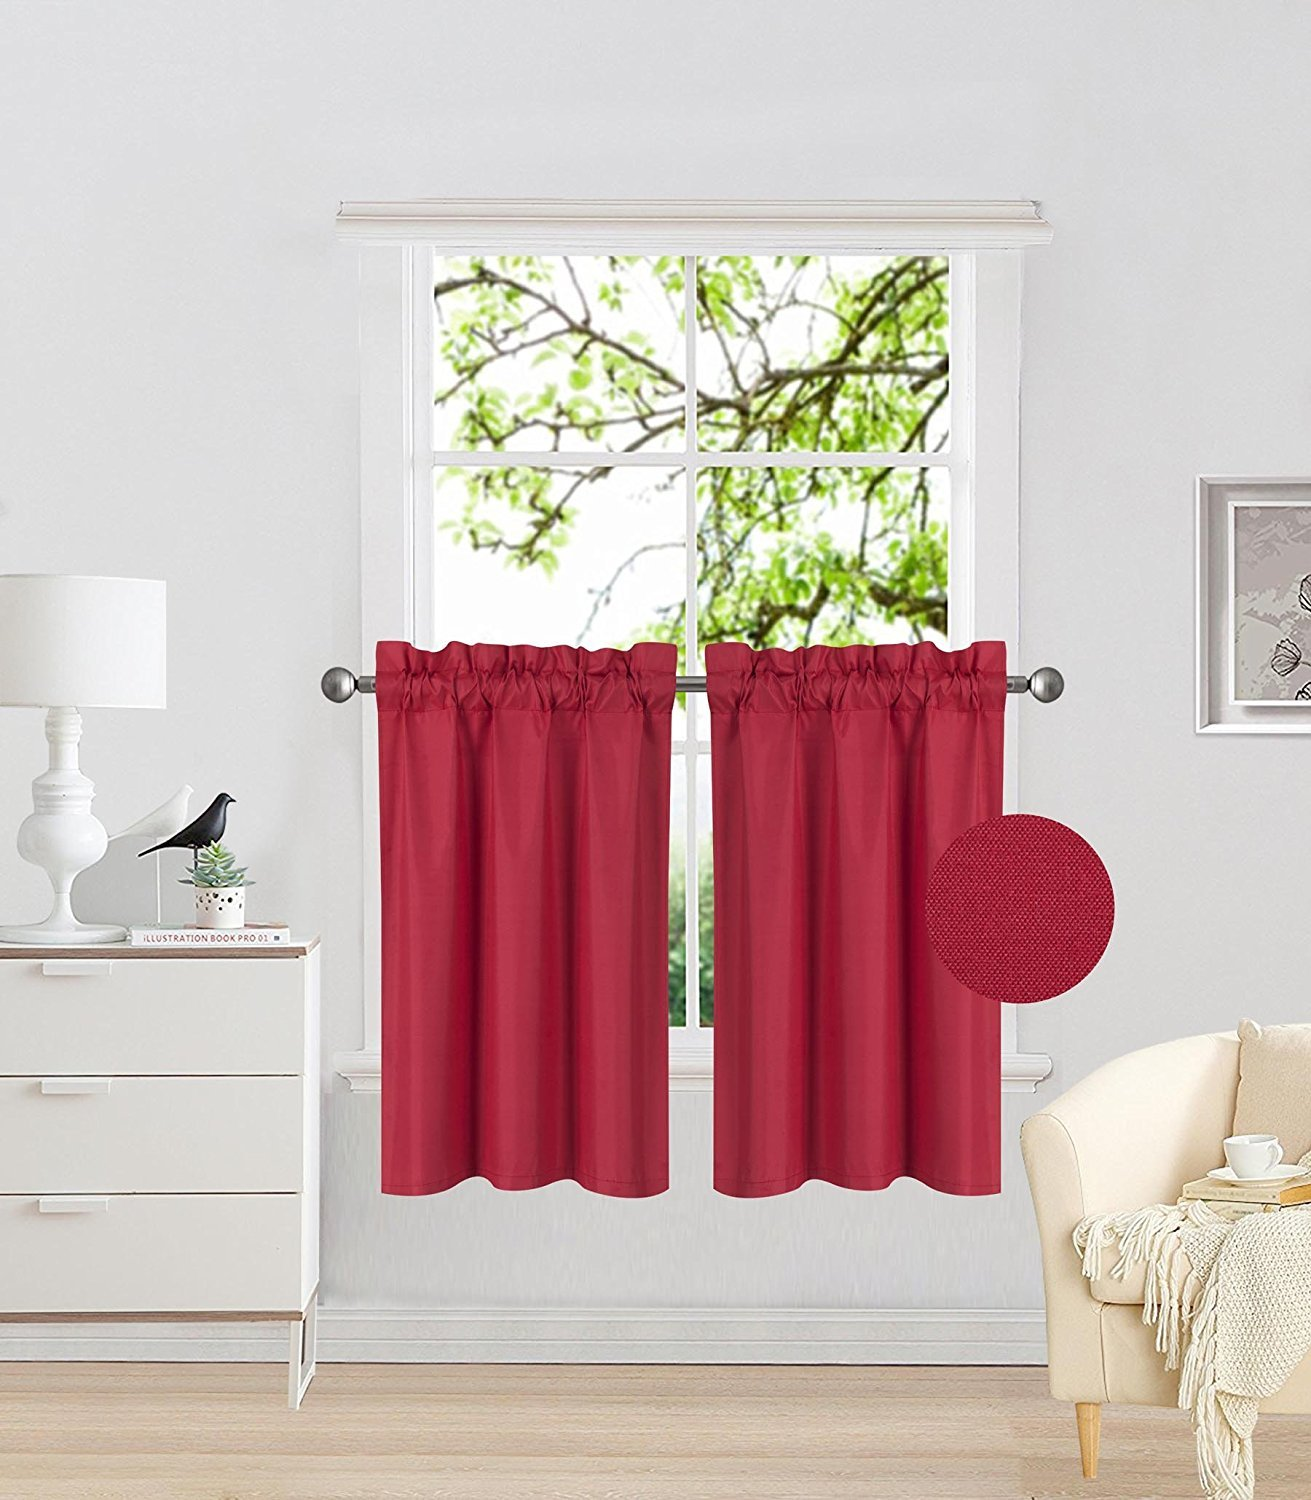 Fancy Collection 2 Panel Blackout Curtains Draperies Thermal Insulated Solid Red Rod Pocket Top Drapes Each Panel is 27'' W X 36'' L for Kid's Room, Bathroom, Kitchen New